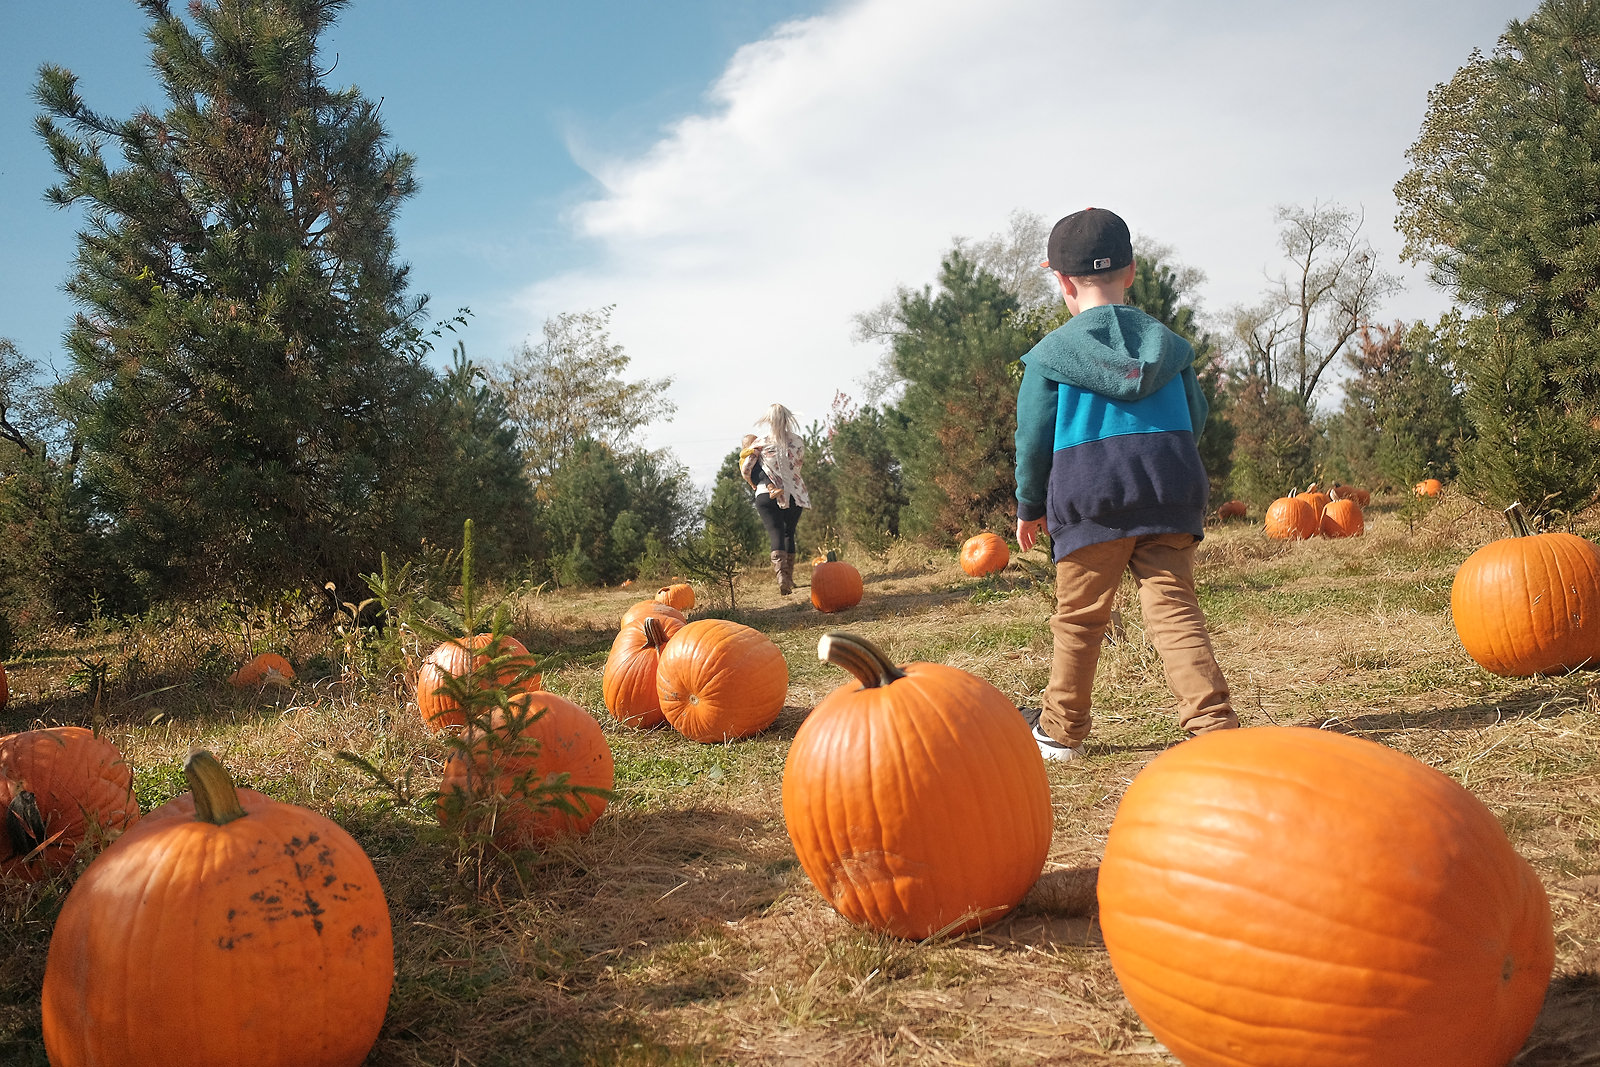 walking-through-pumpkin-patch